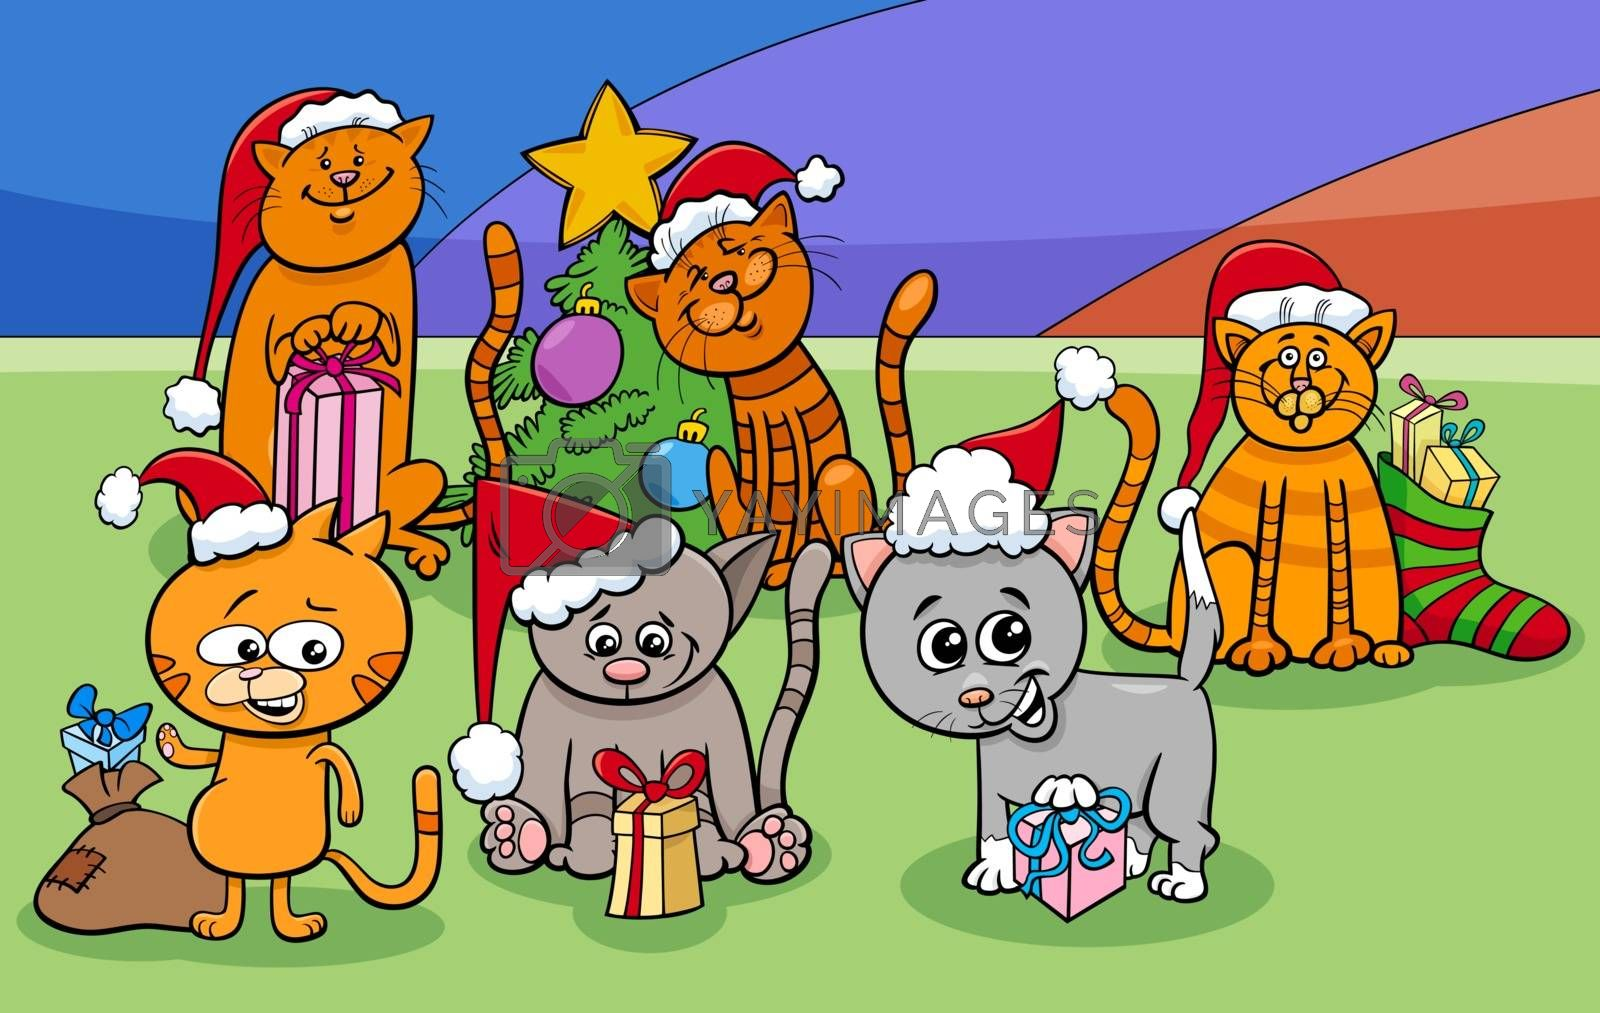 Cartoon Illustration of Cats and Kittens Animal Characters Group on Christmas Time